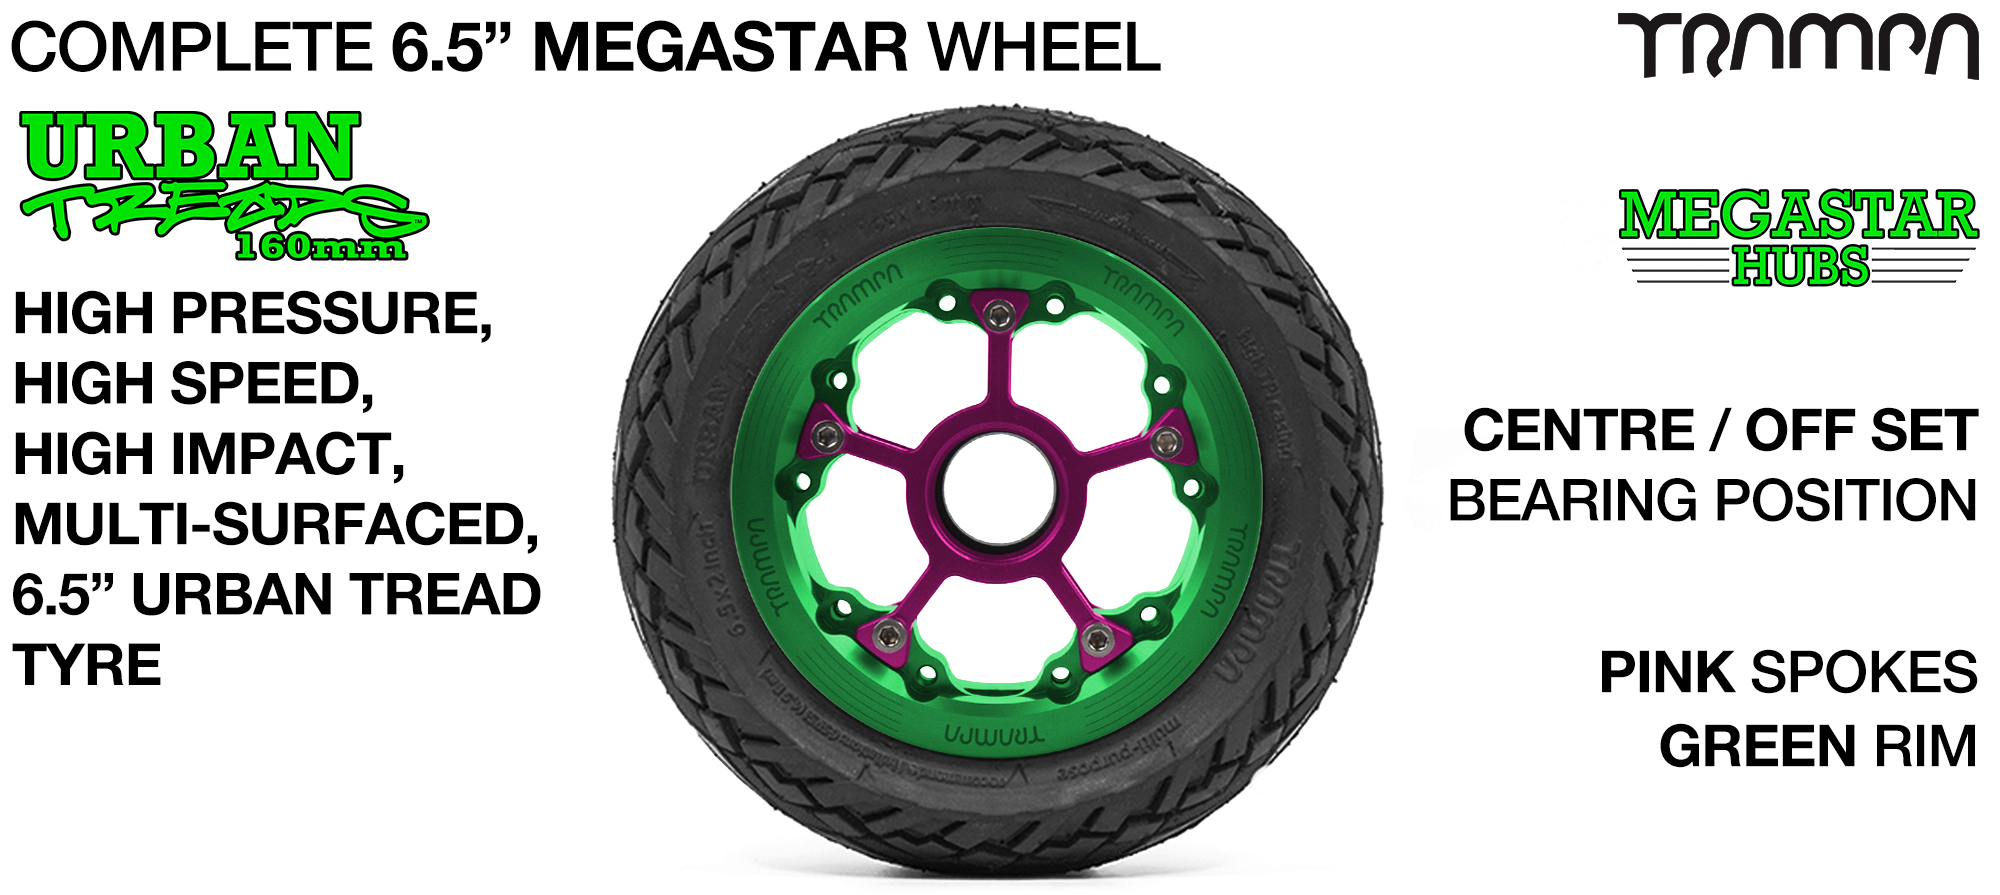 GREEN MEGASTAR Rims with PINK Spokes & 6.5 Inch URBAN Treads Tyres